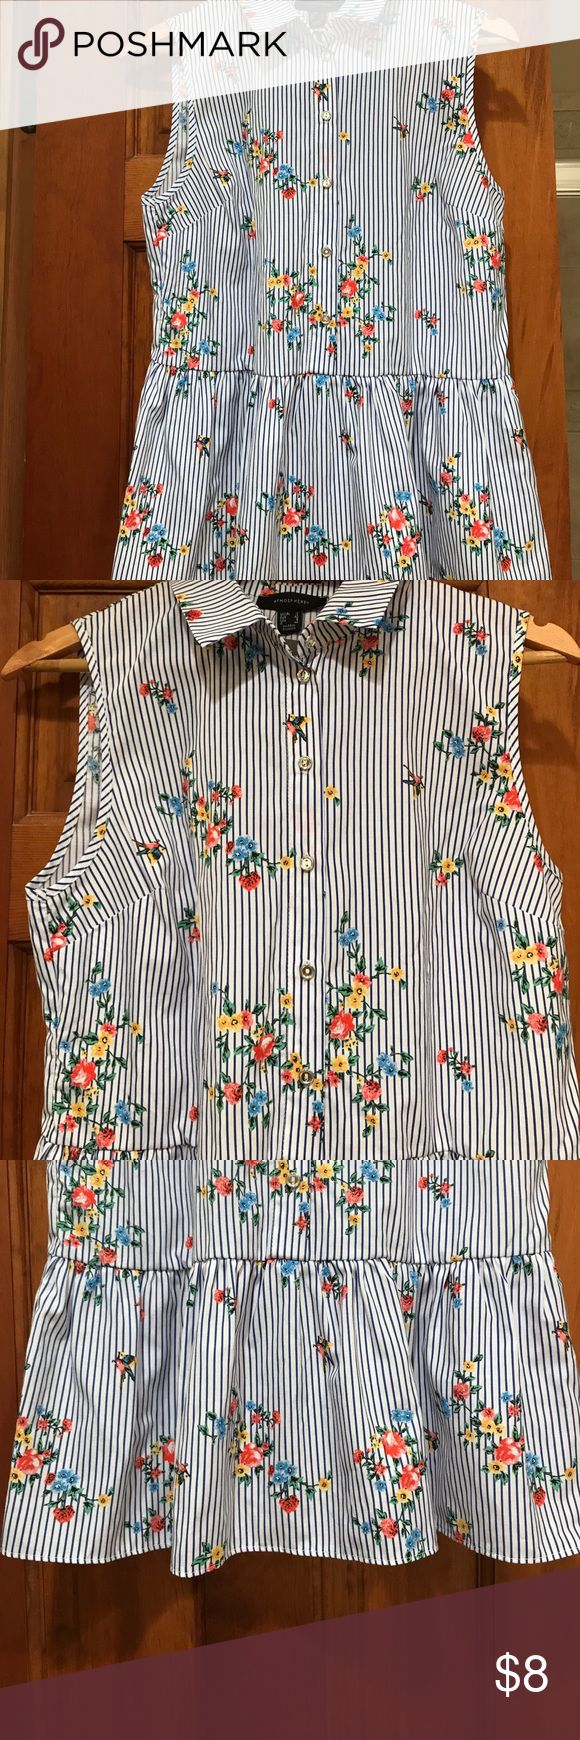 Peblum Top New with tags! Doesn't fit. From Primark which is a clothing brand in London, England. Tops Blouses